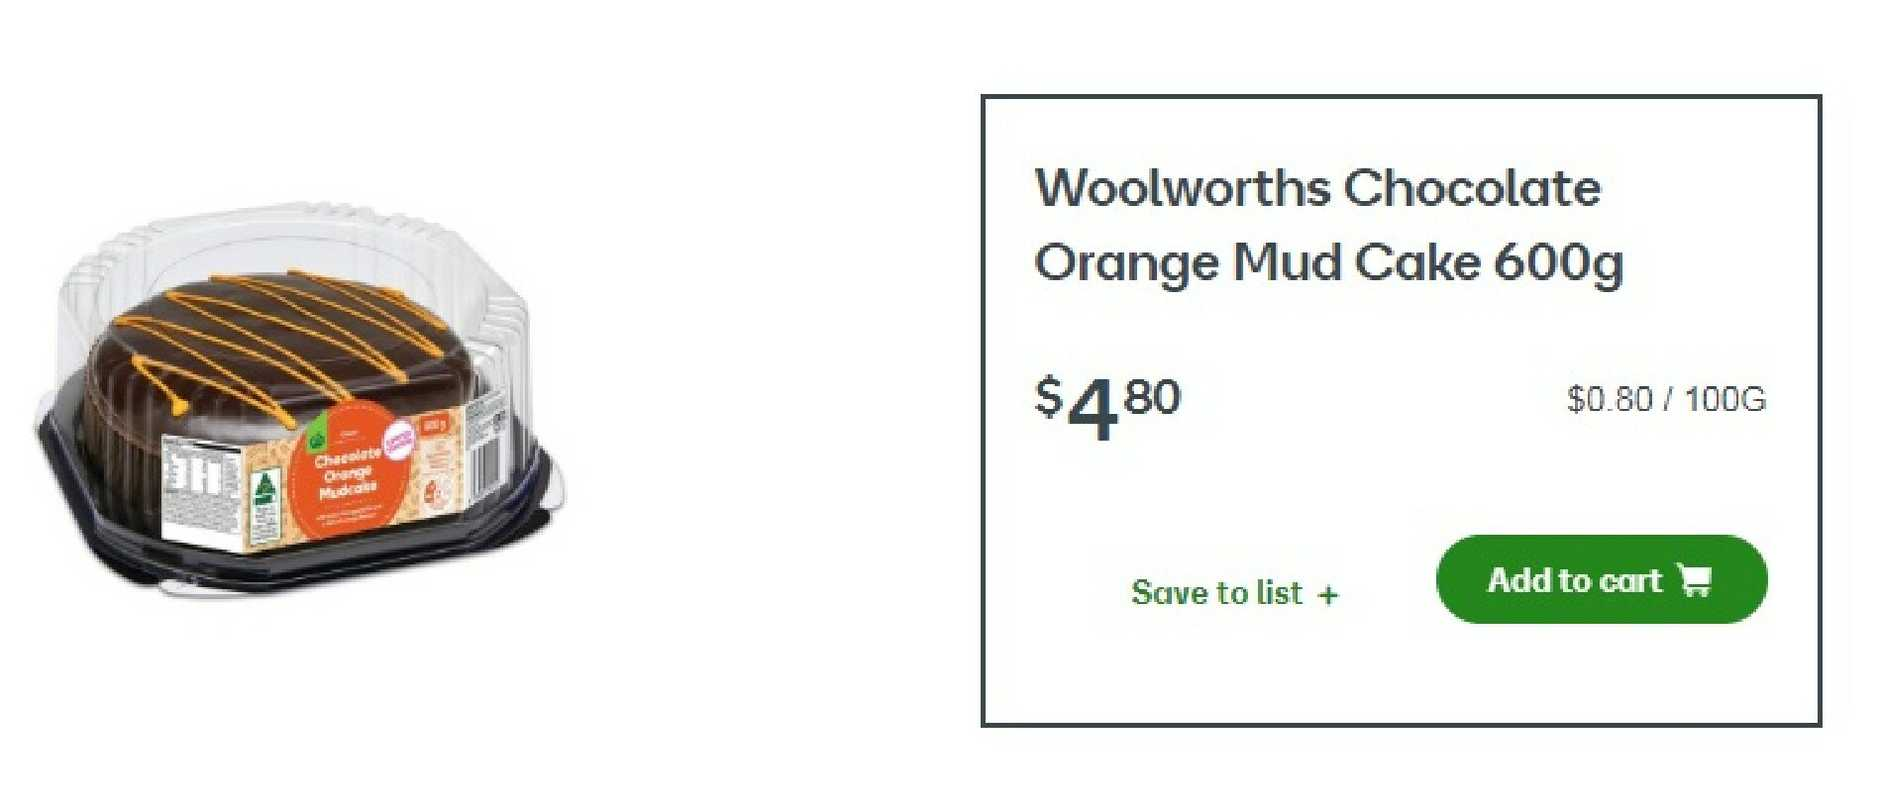 The brand new choc orange cake will set you back $4.80. Picture: Woolworths